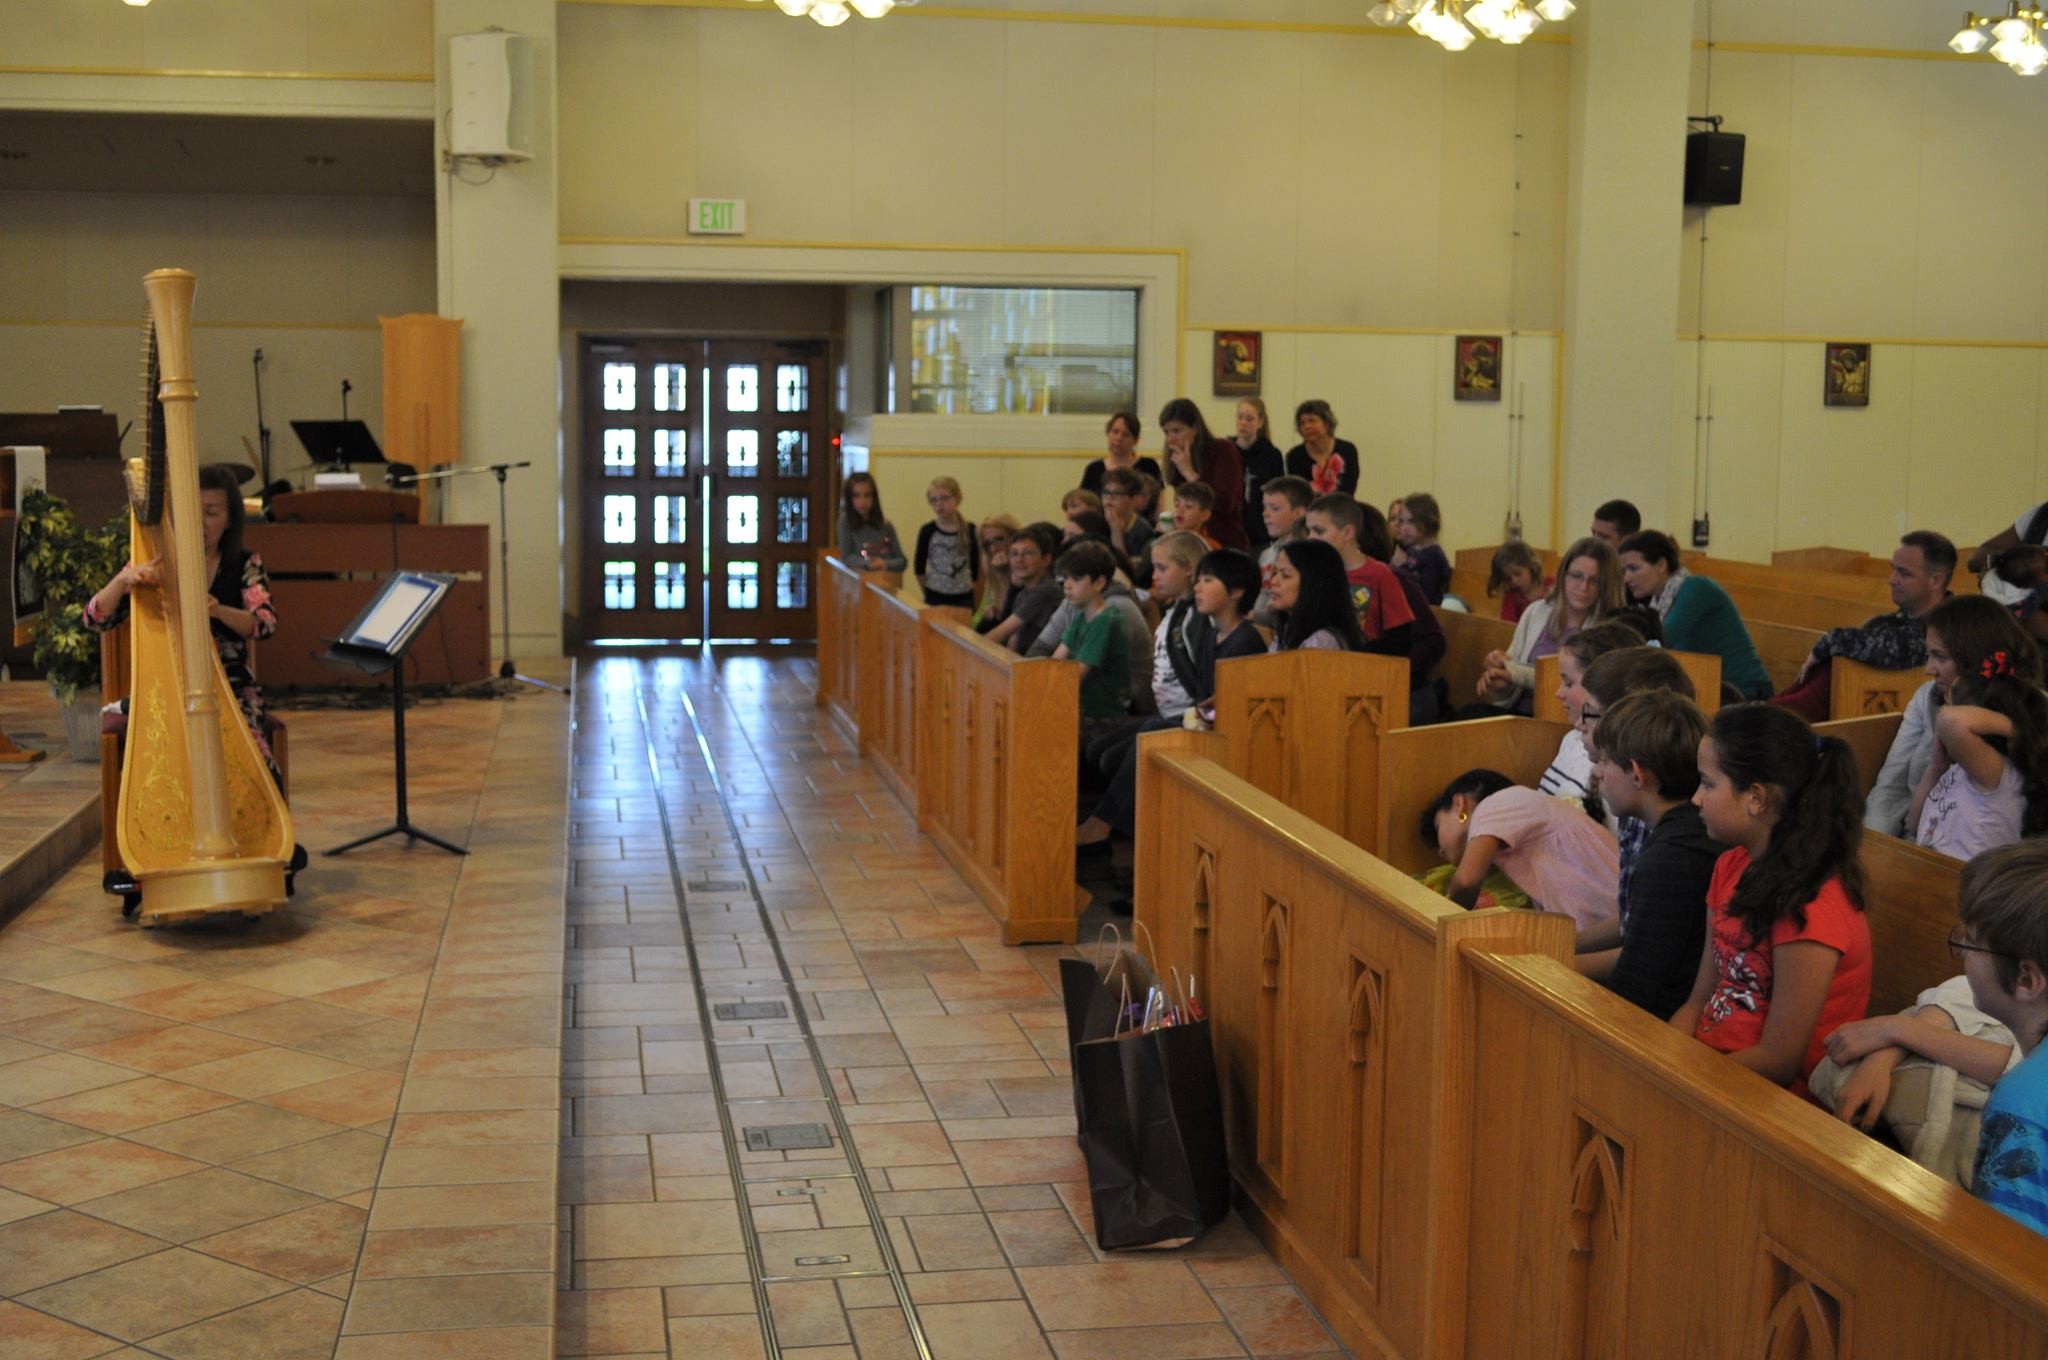 ecture Recital for American-Japanese Homeschoolers for their music class at the Chapel of Hope Church.